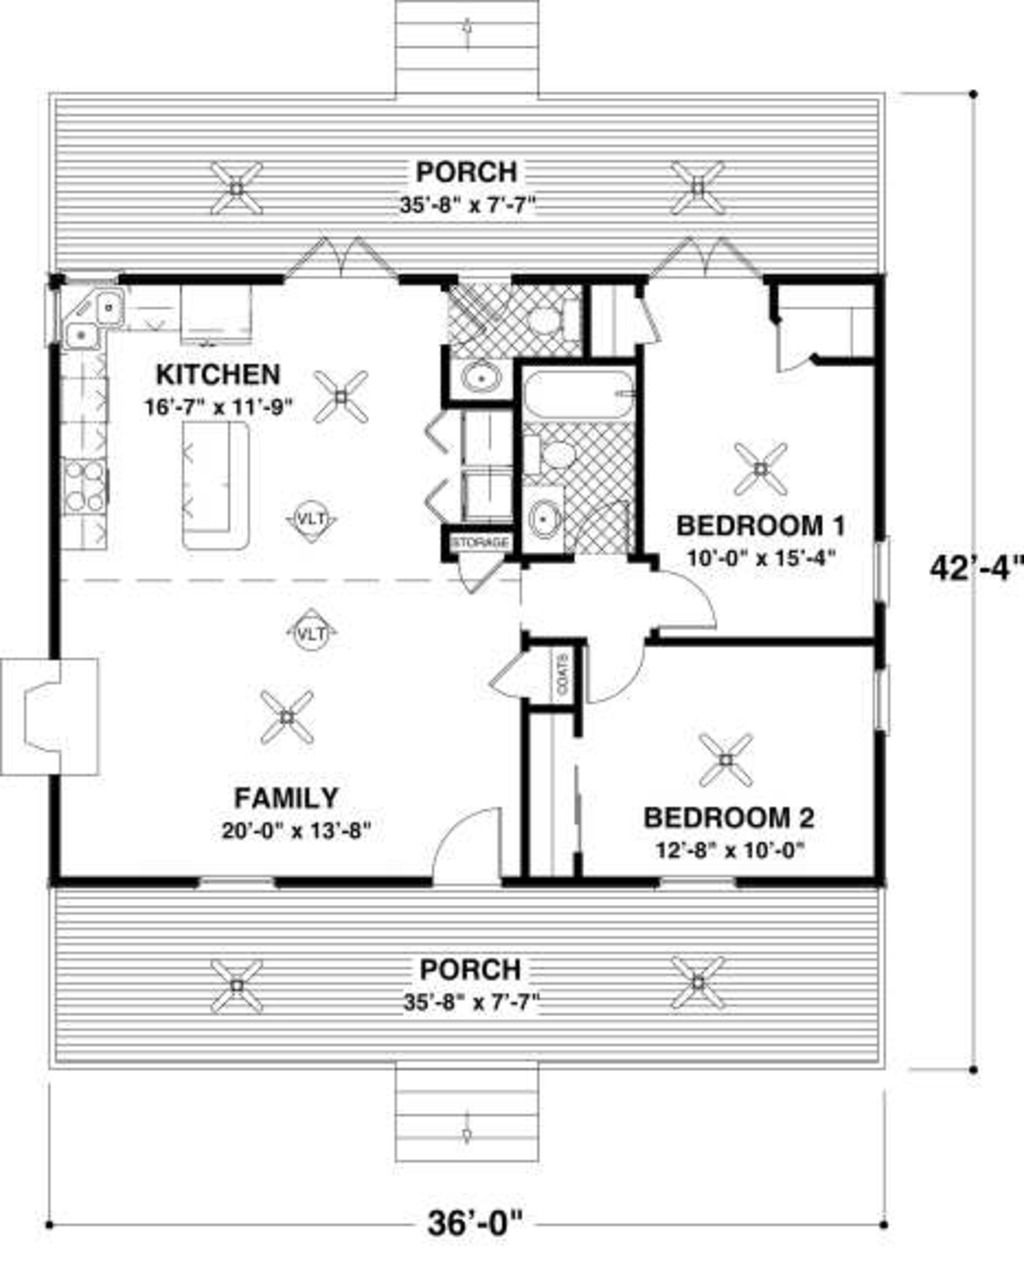 Cottage Style House Plan 2 Beds 1 5 Baths 954 Sq Ft Plan 56 547 Tiny House Plans Small House Plans Small House Floor Plans